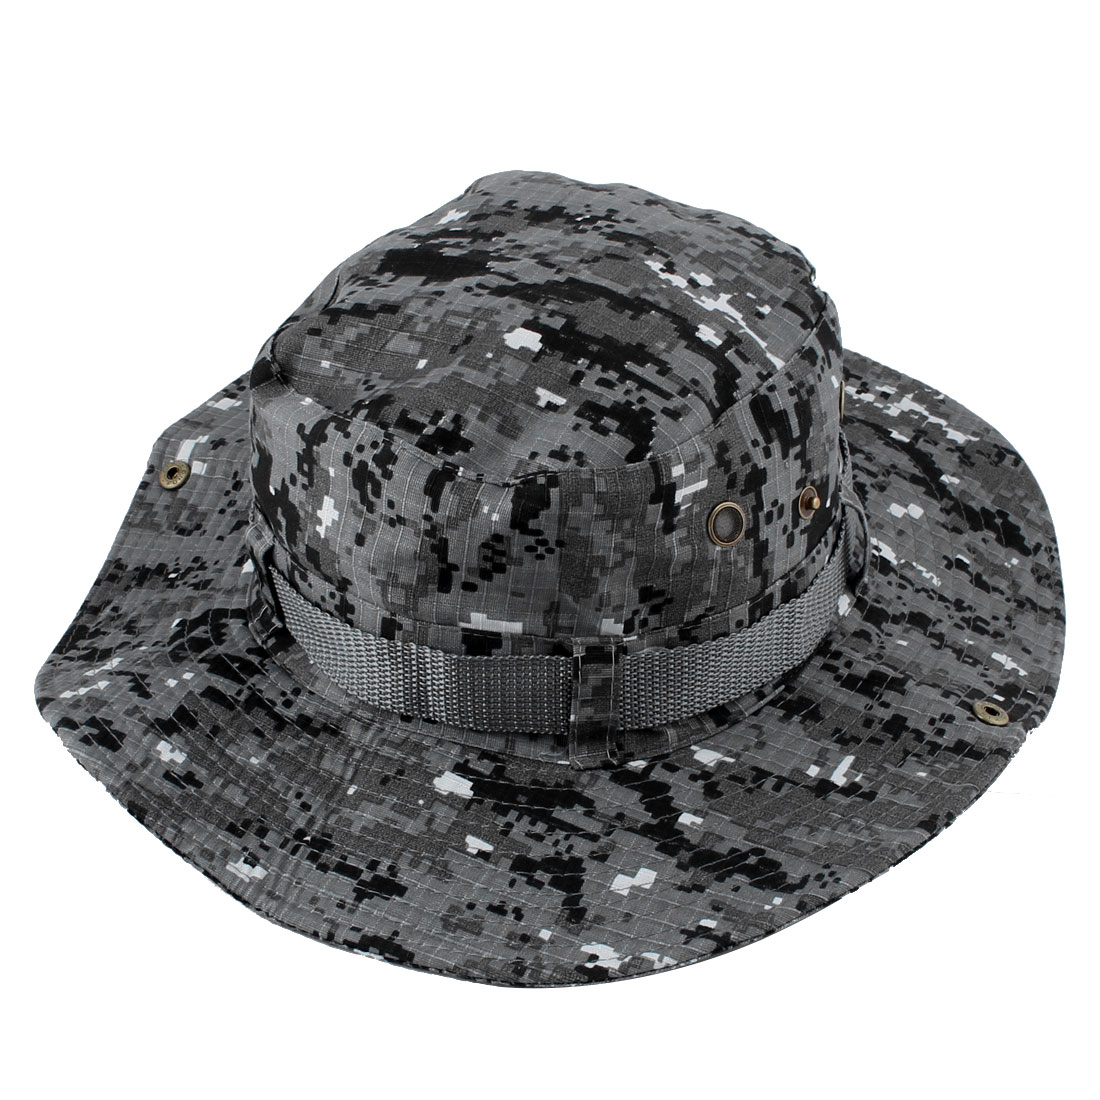 Fisherman Unisex Outdoor Fishing Hiking Hunting Wide Brim Summer Sun Protective Camouflage Cap Bucket Hat #3